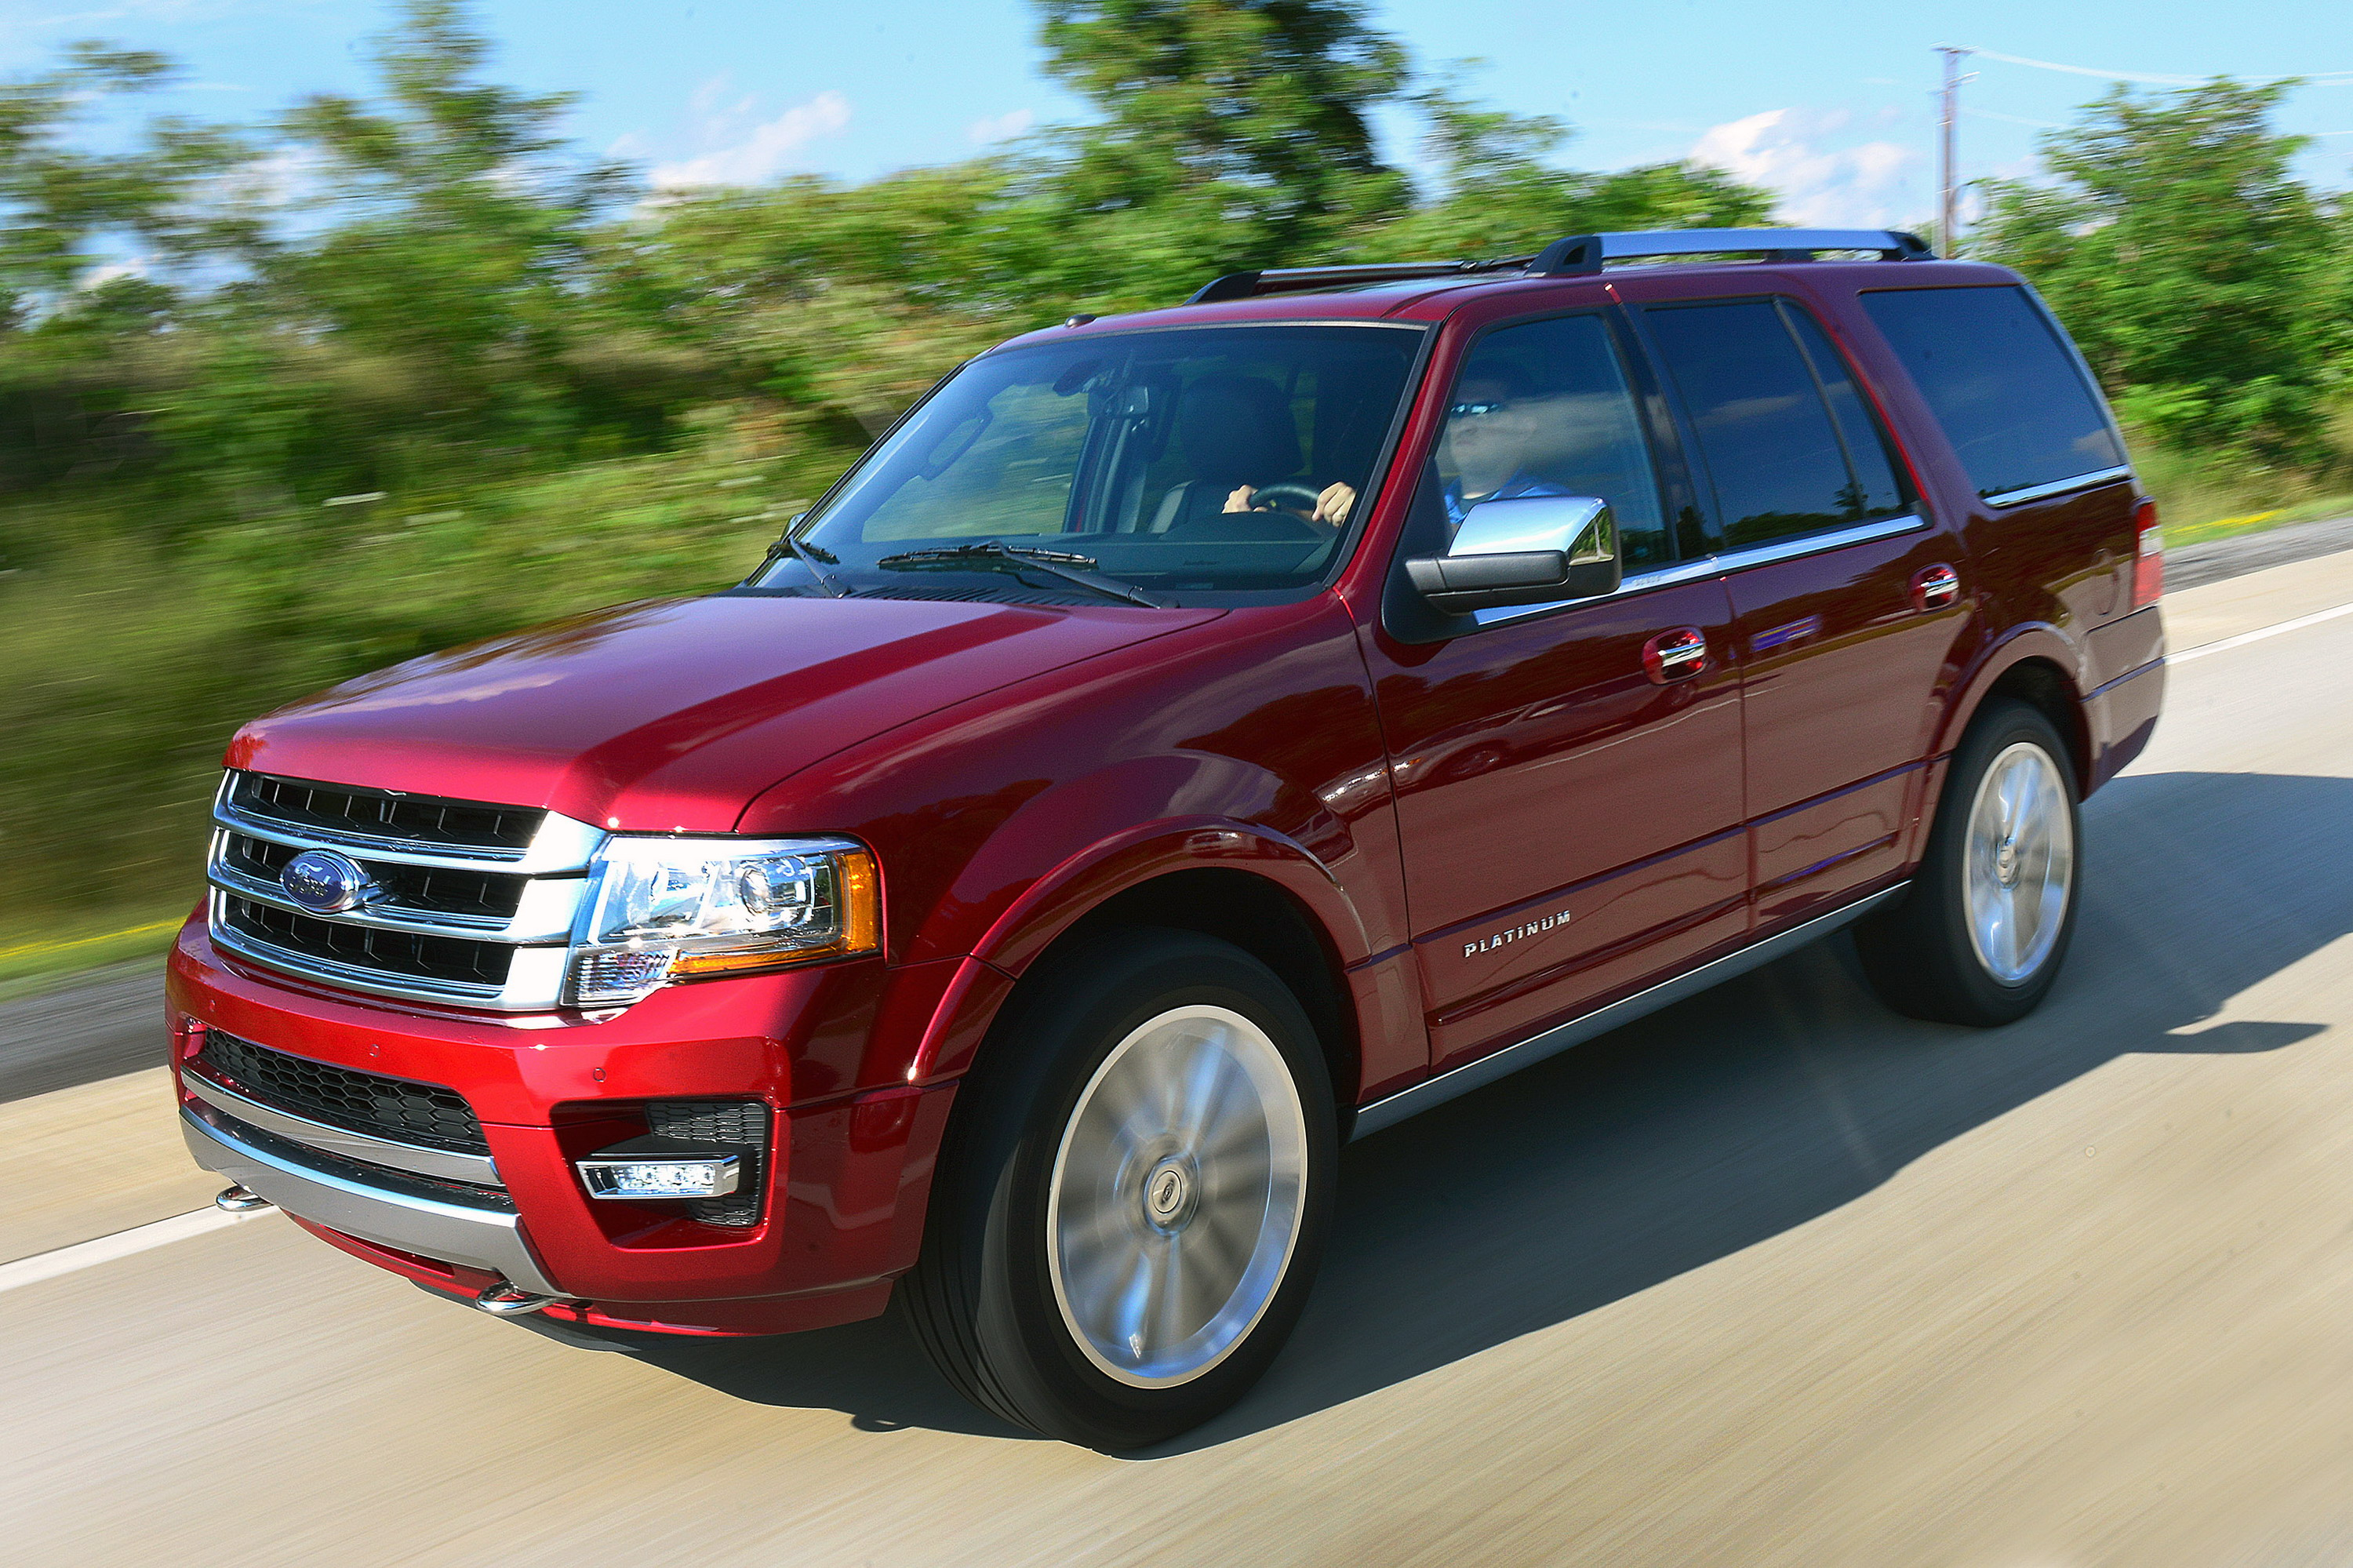 2015 ford expedition review top speed. Black Bedroom Furniture Sets. Home Design Ideas